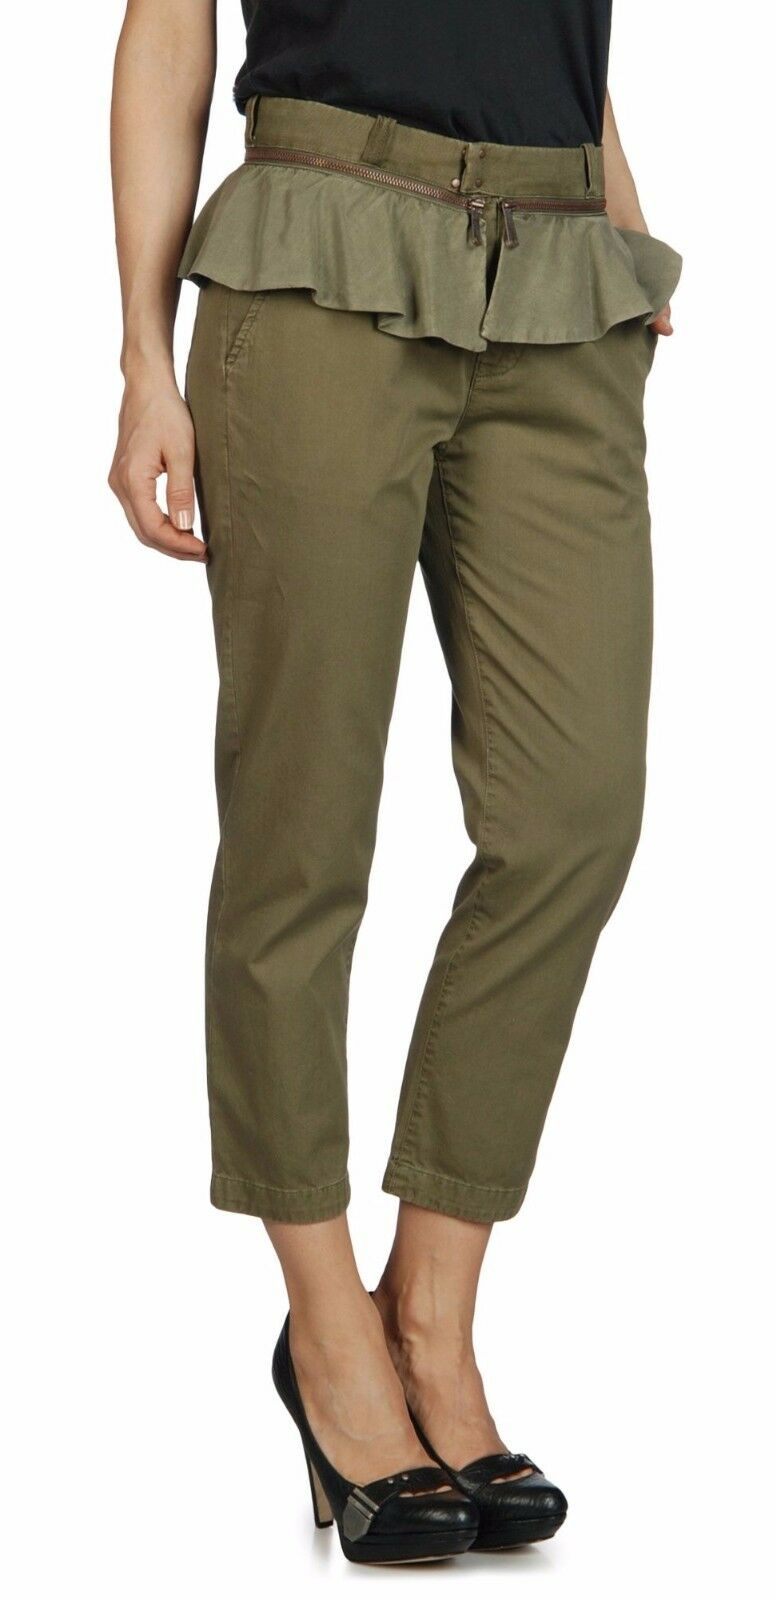 Diesel P-CLO Cotton Tapered Peplum Pants Trousers Hunter Green 26  228